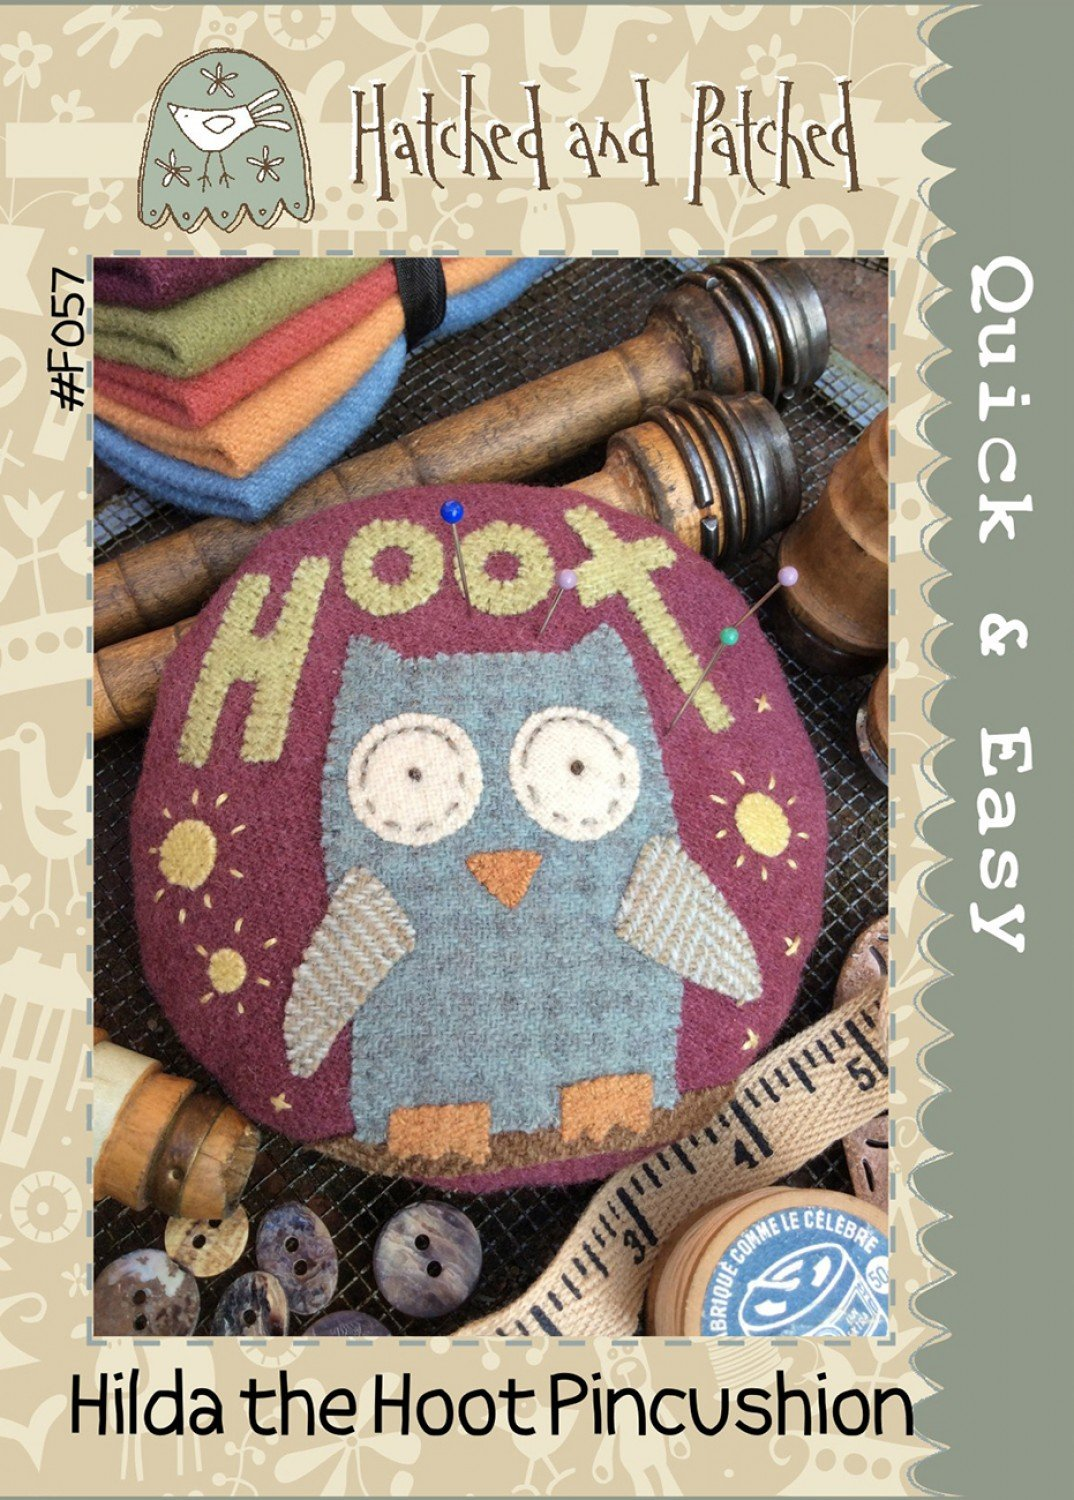 Hilda the Hoot Pincushion by Hatched & Patched